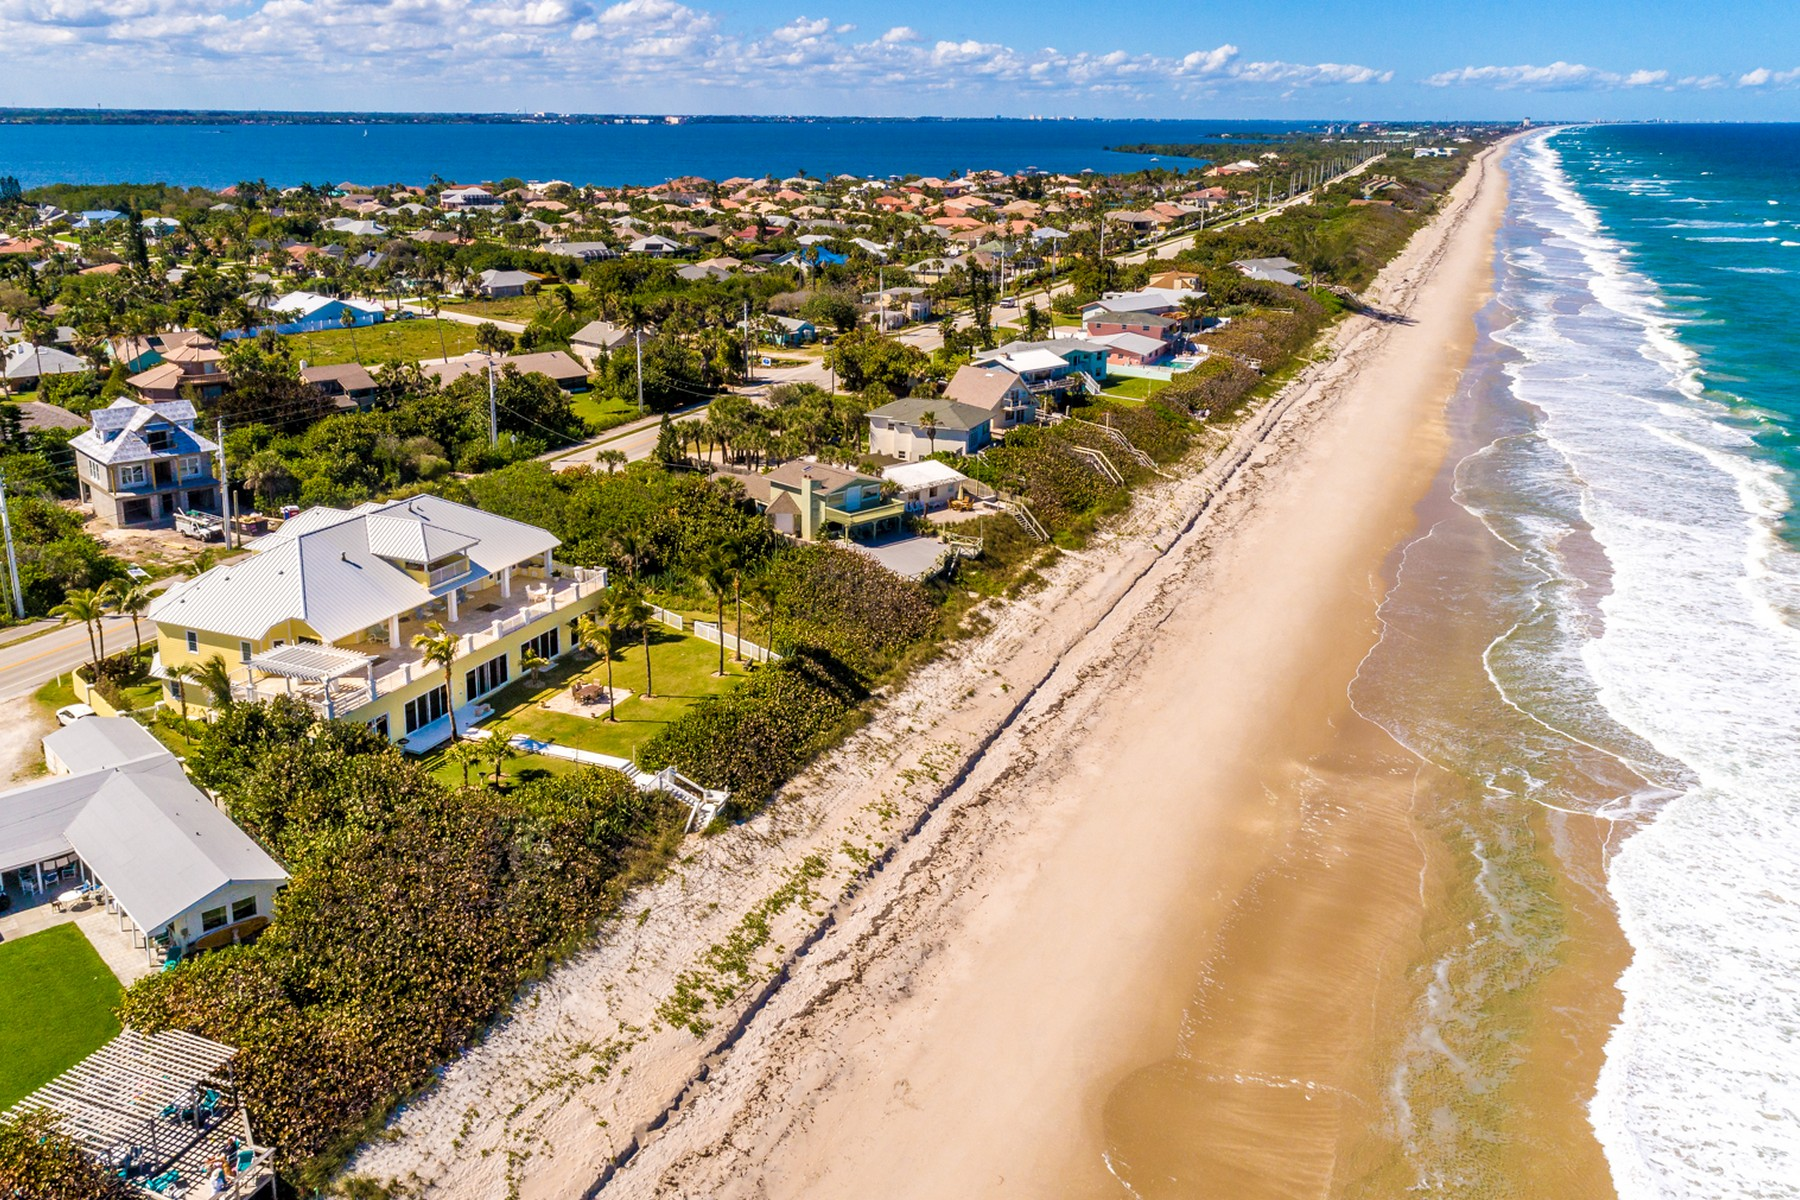 Additional photo for property listing at Gorgeous Tropically Landscaped Home with Endless Ocean Vistas 5045 S Highway A1A Melbourne Beach, Florida 32951 Amerika Birleşik Devletleri